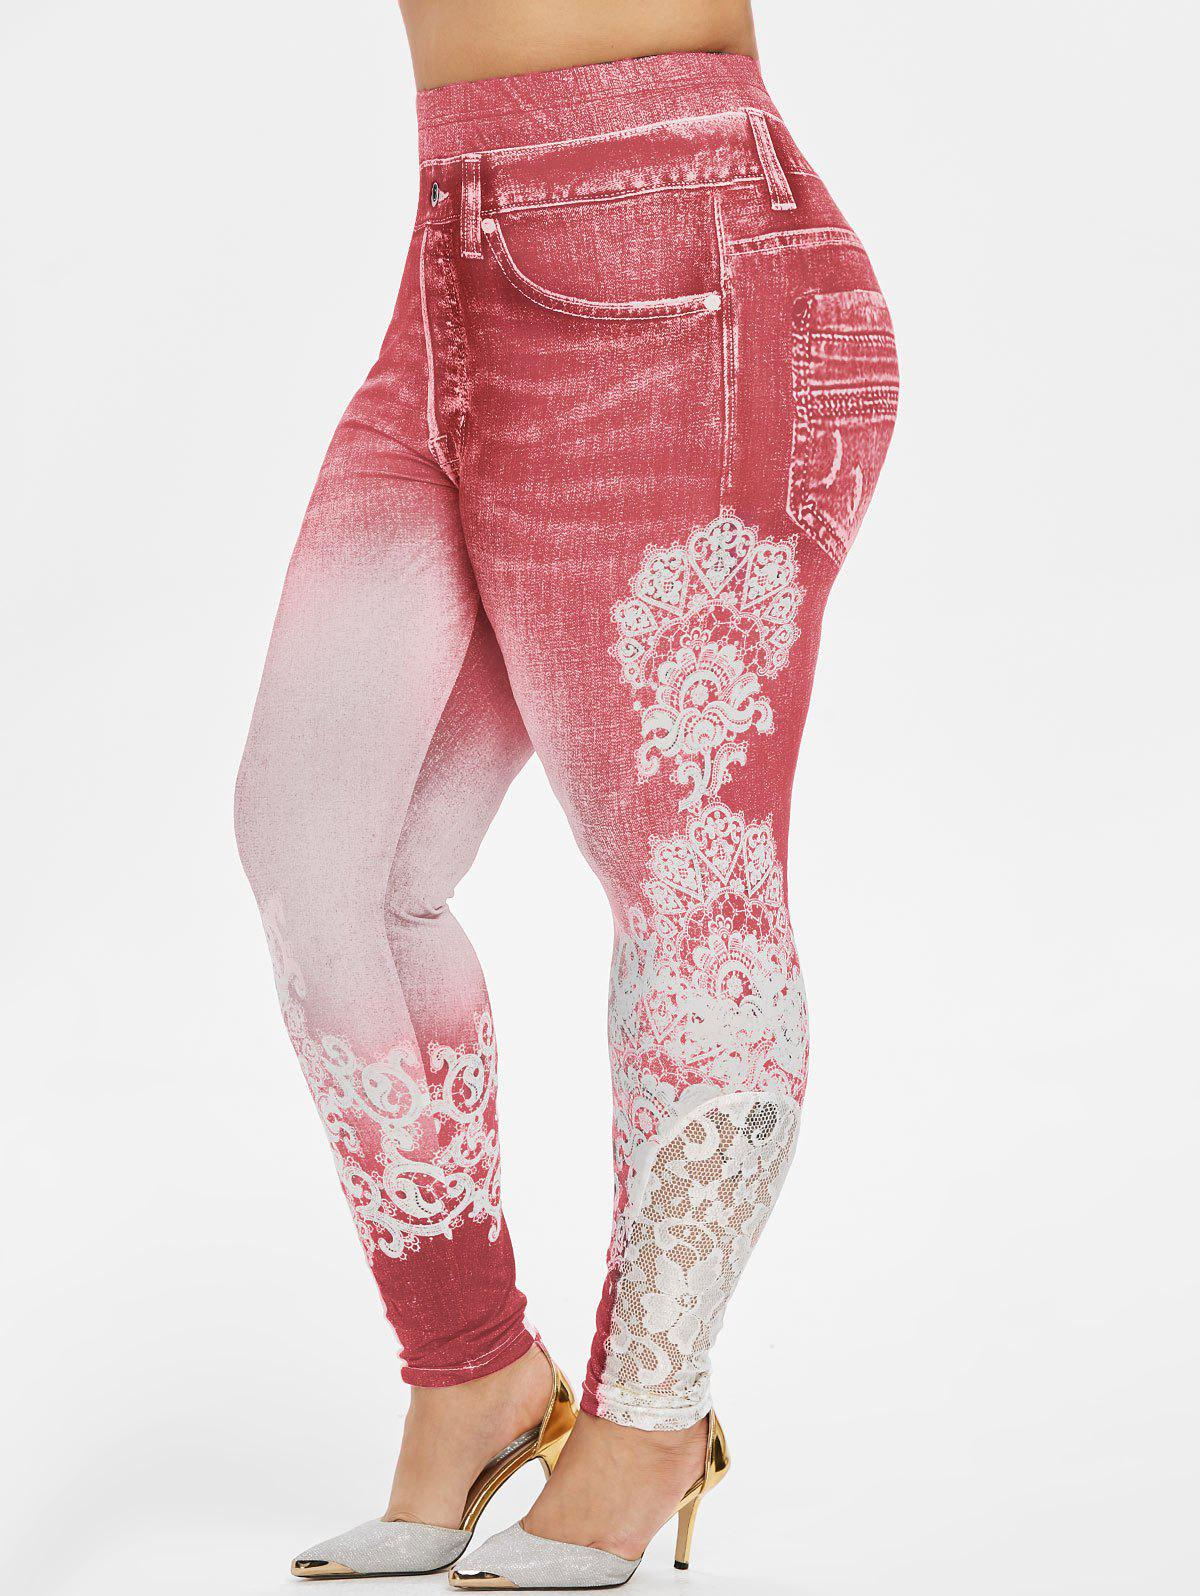 Plus Size 3D Print Lace Insert Jeggings - RED 3X